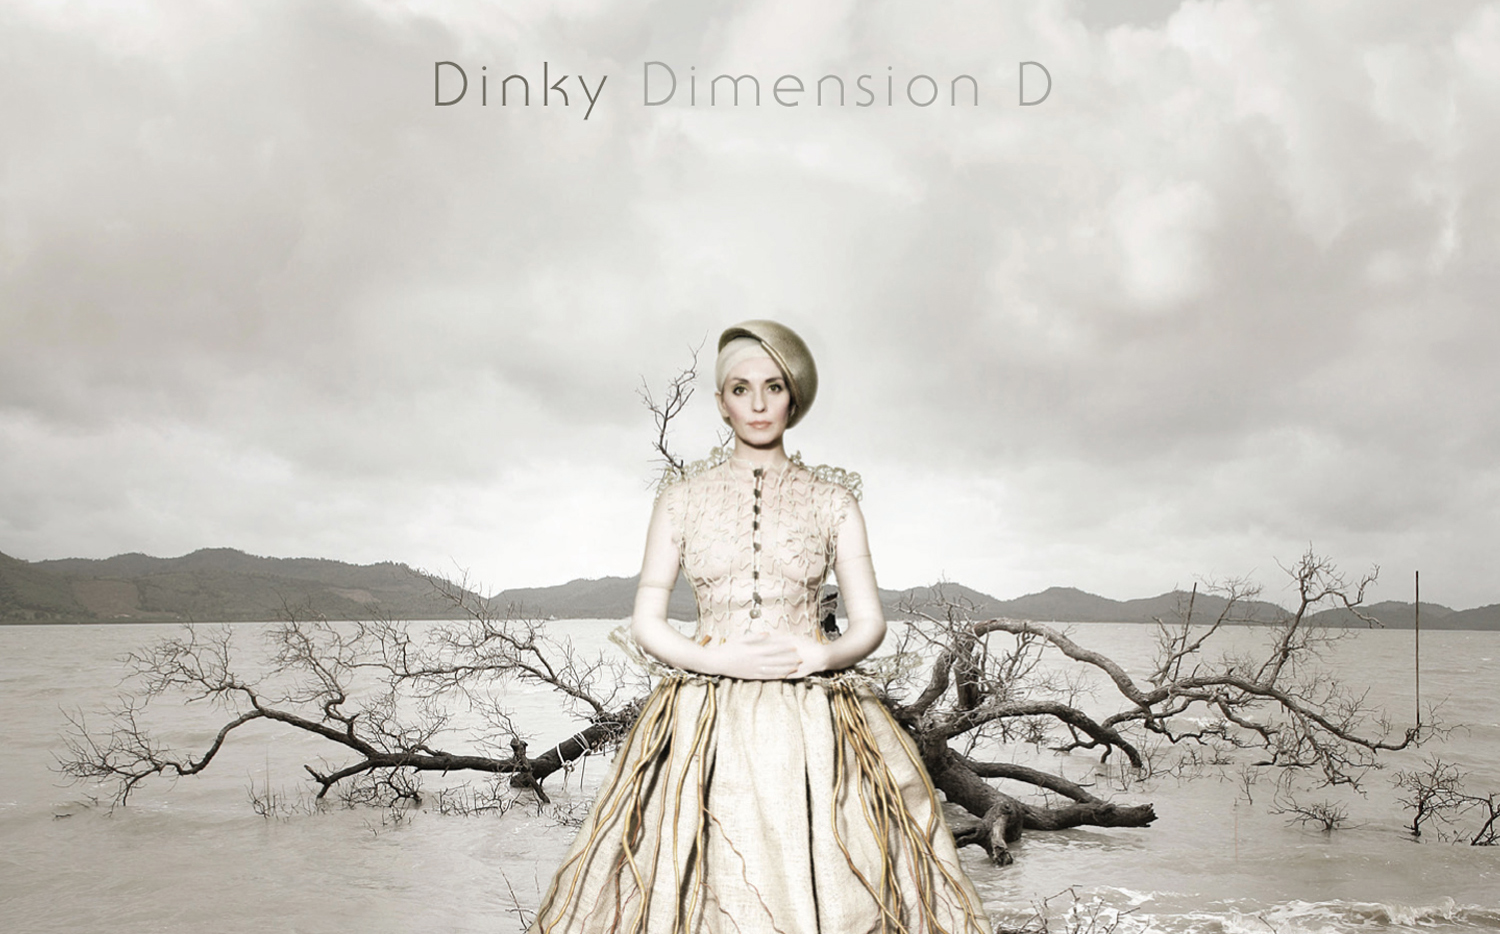 Dinky – Dimension D (Visionquest)